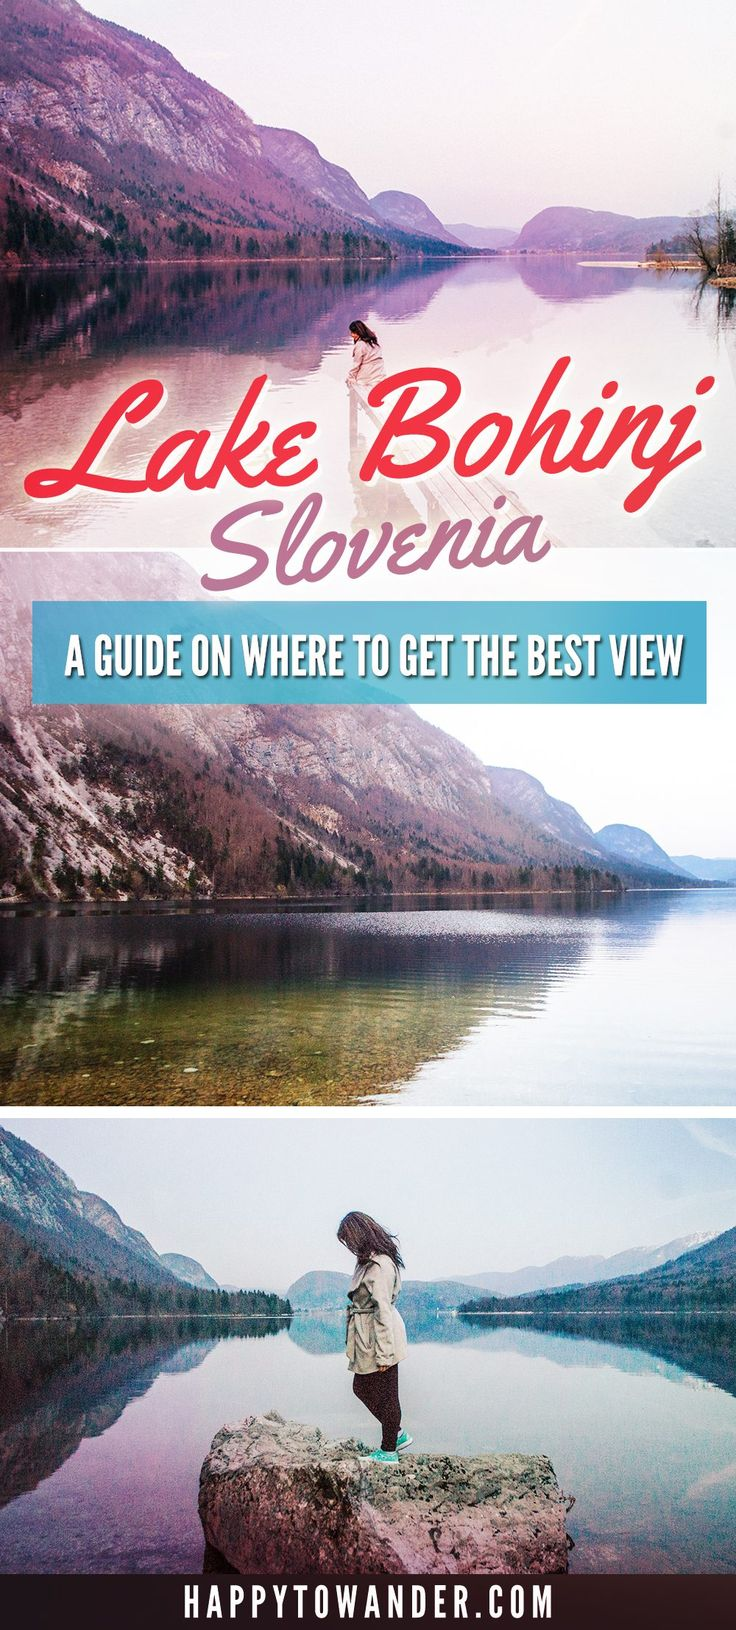 Lake Bohinj, Slovenia is one of THE most magical and serene lakes in the whole world. Here's an easy guide on how to get the best views of this massive lake (Slovenia's largest), including a map on how to get to the best spot for photos.